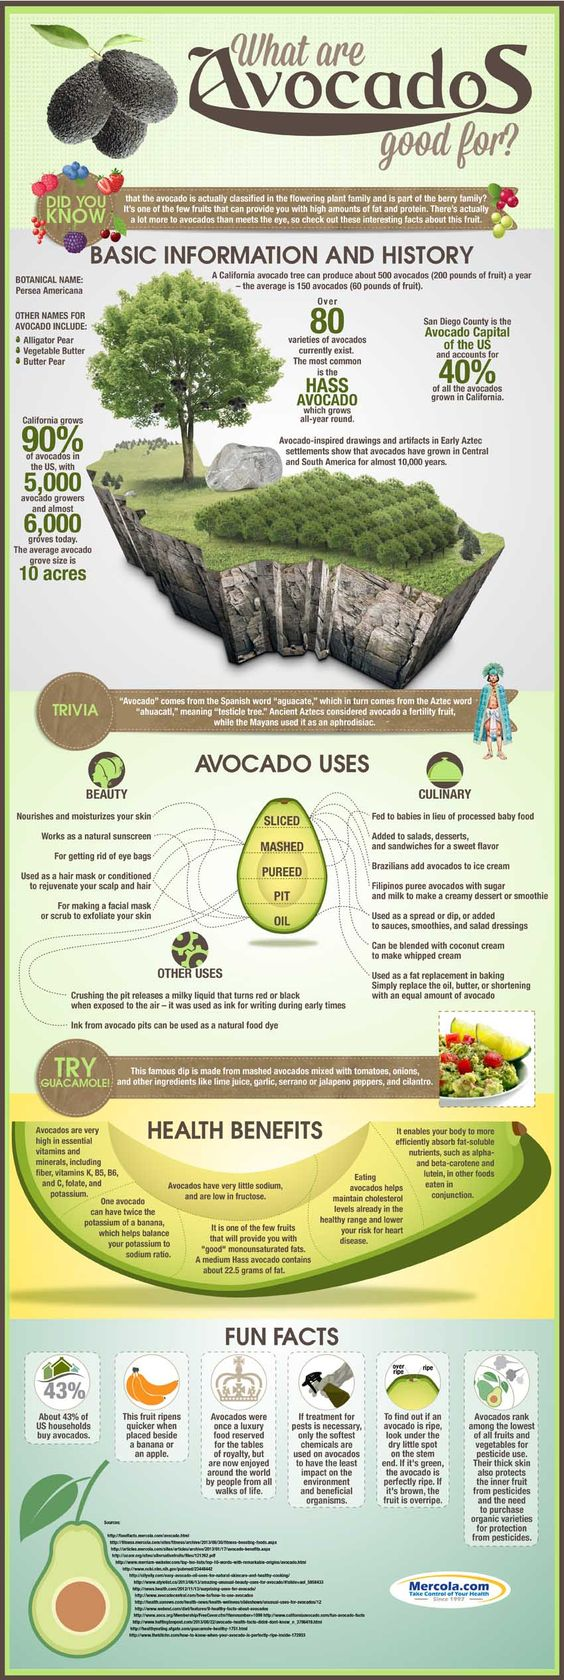 Discover avocado uses and benefits through The Amazing Avocado chart here. Learn why this food should be part of your lchf diet. www.oneintofood.com: